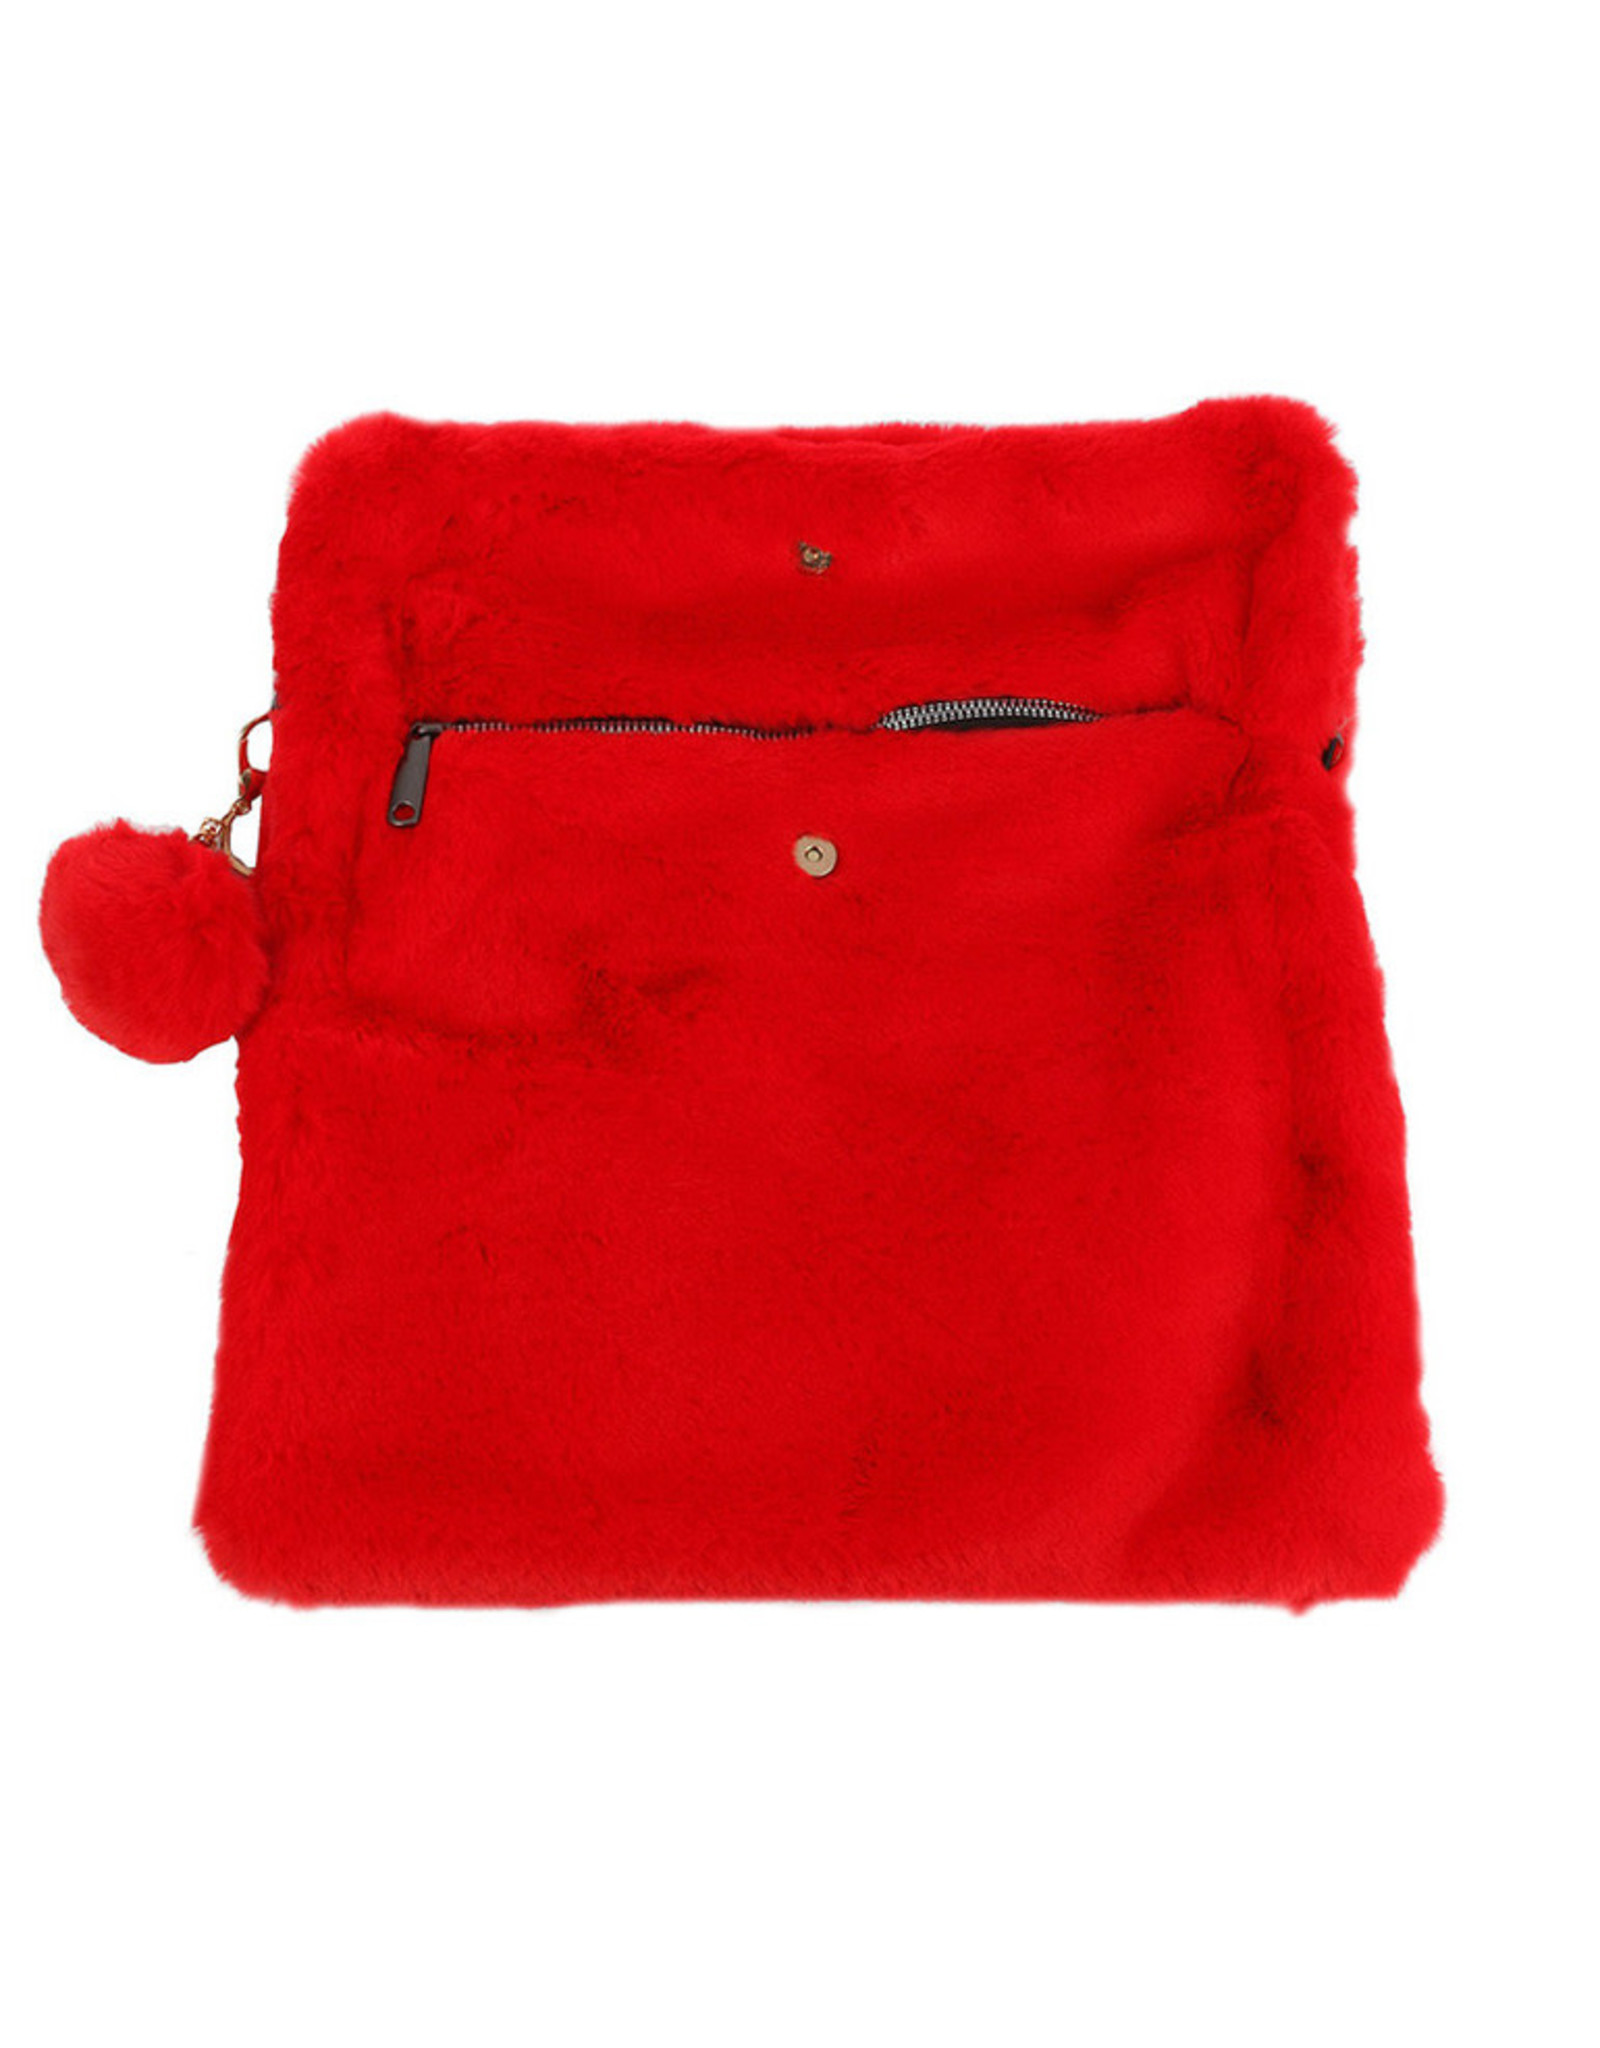 "PURSE RED VELVET SOFT FAUX FUR REMOVEABLE POM POM KEY CHAIN AND SHOULDER CHAIN 13"" X 10.5"" ZIPPER W MAGNET CLOSURE"